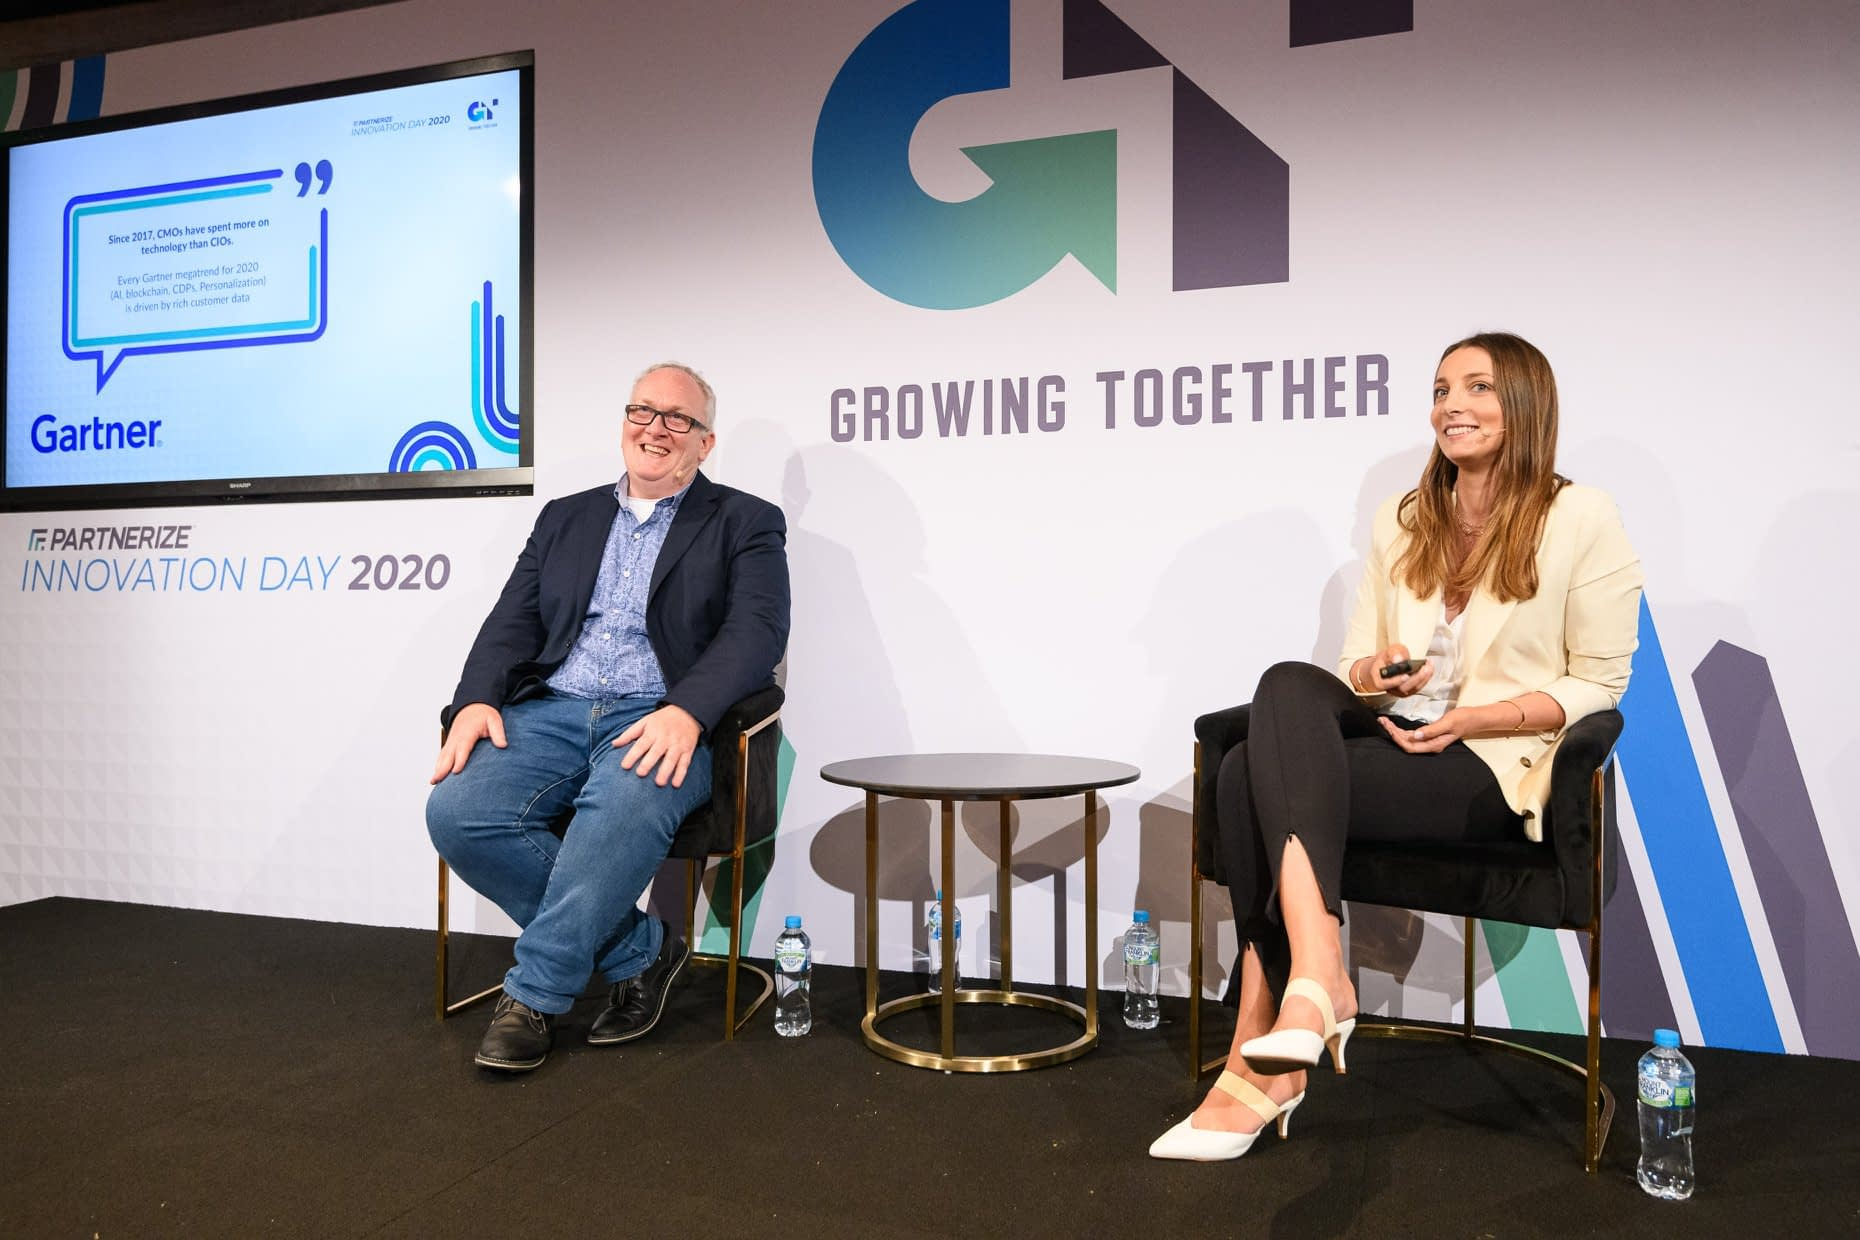 Partnerize Innovation Day 2020 Sydney Product Vision Stefanie Colley and Jim Nichols.jpg